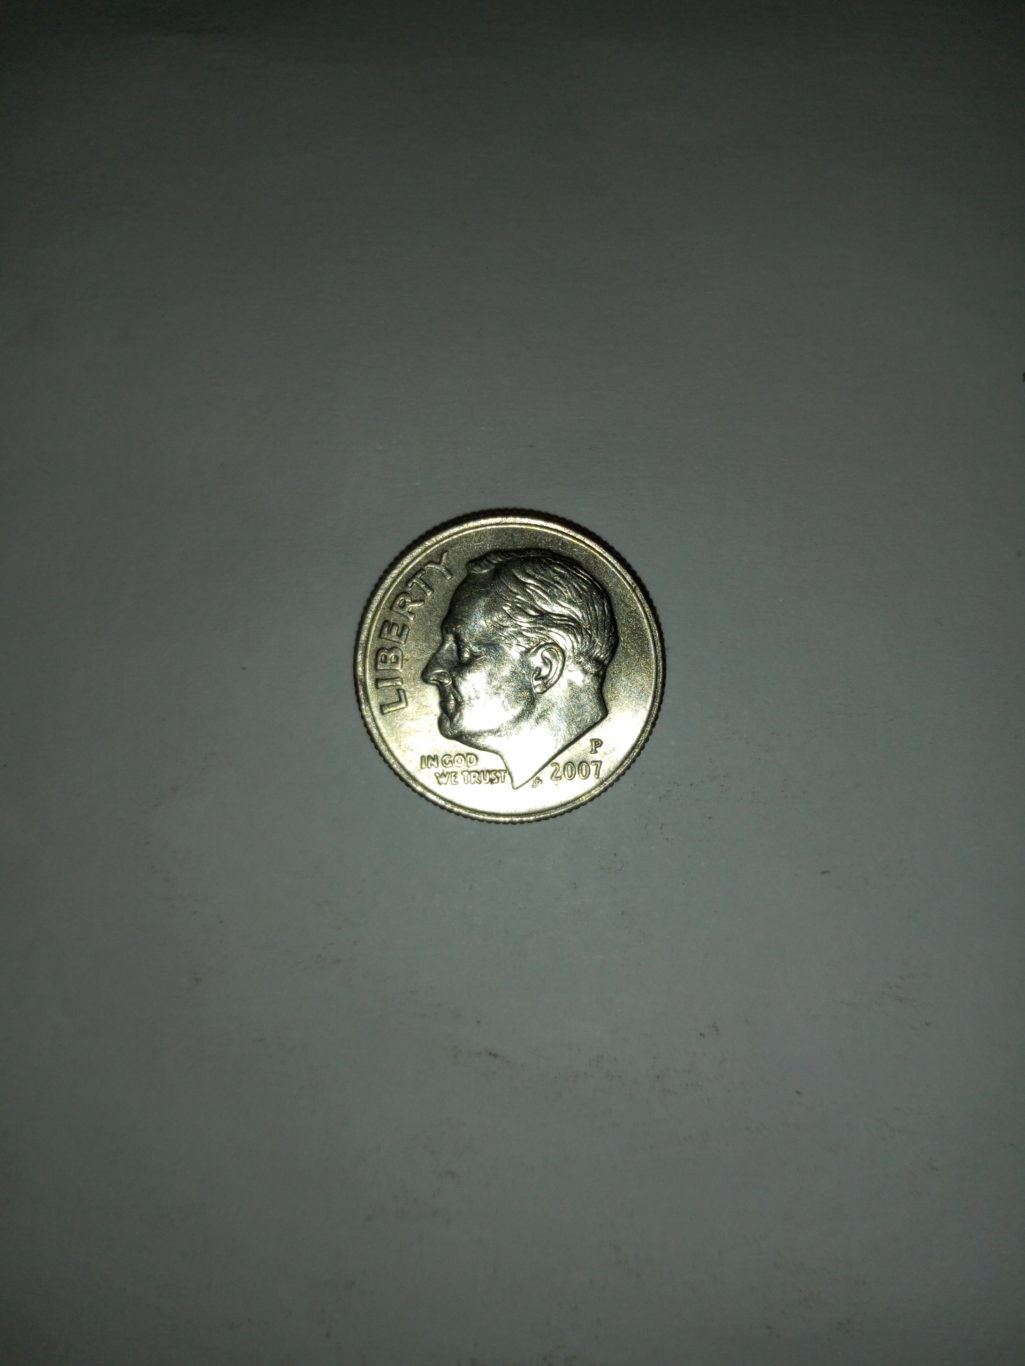 2007_united States of america 1 dime